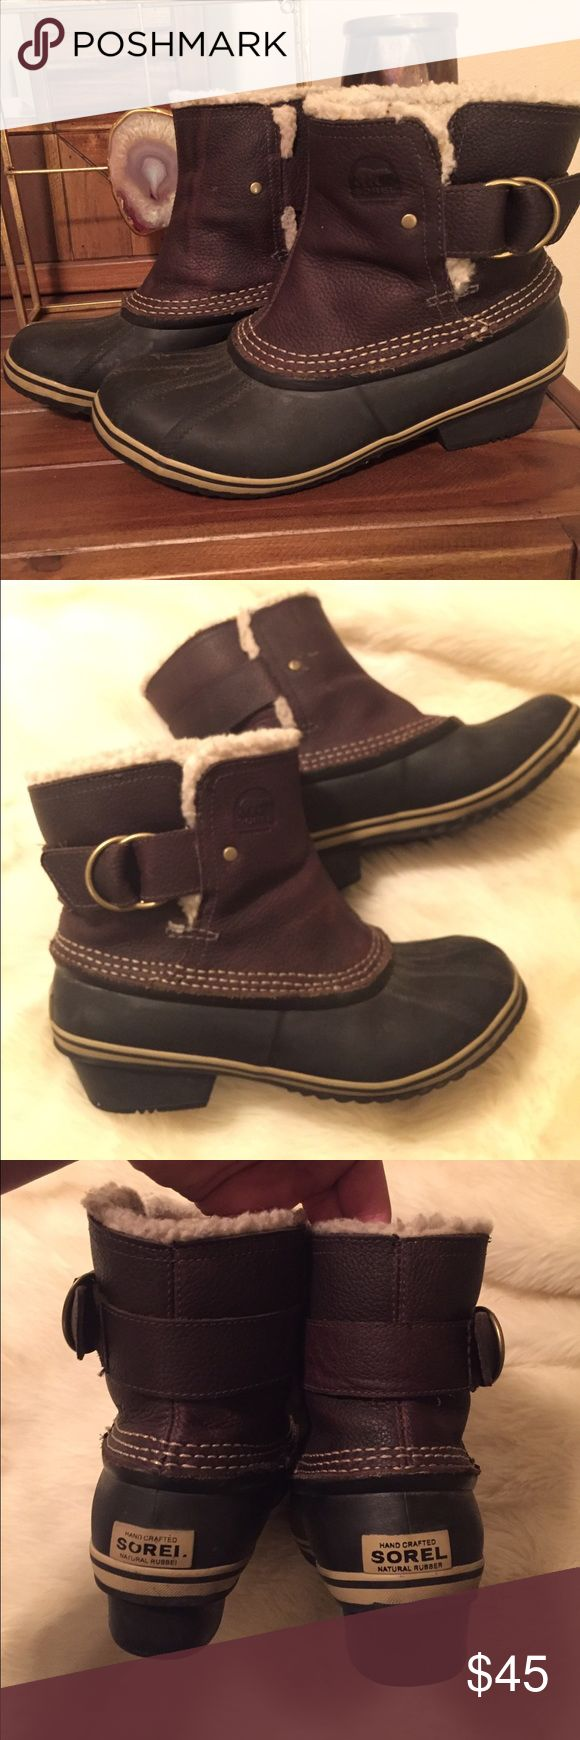 """Sorel winter boots """"Fancy"""" version of sorel winter boots with fir on the inside. Dark brown leather with black toe. These come just over the ankle in height. Really cute and commit, show normal signs of wear. Sorel Shoes Winter & Rain Boots"""